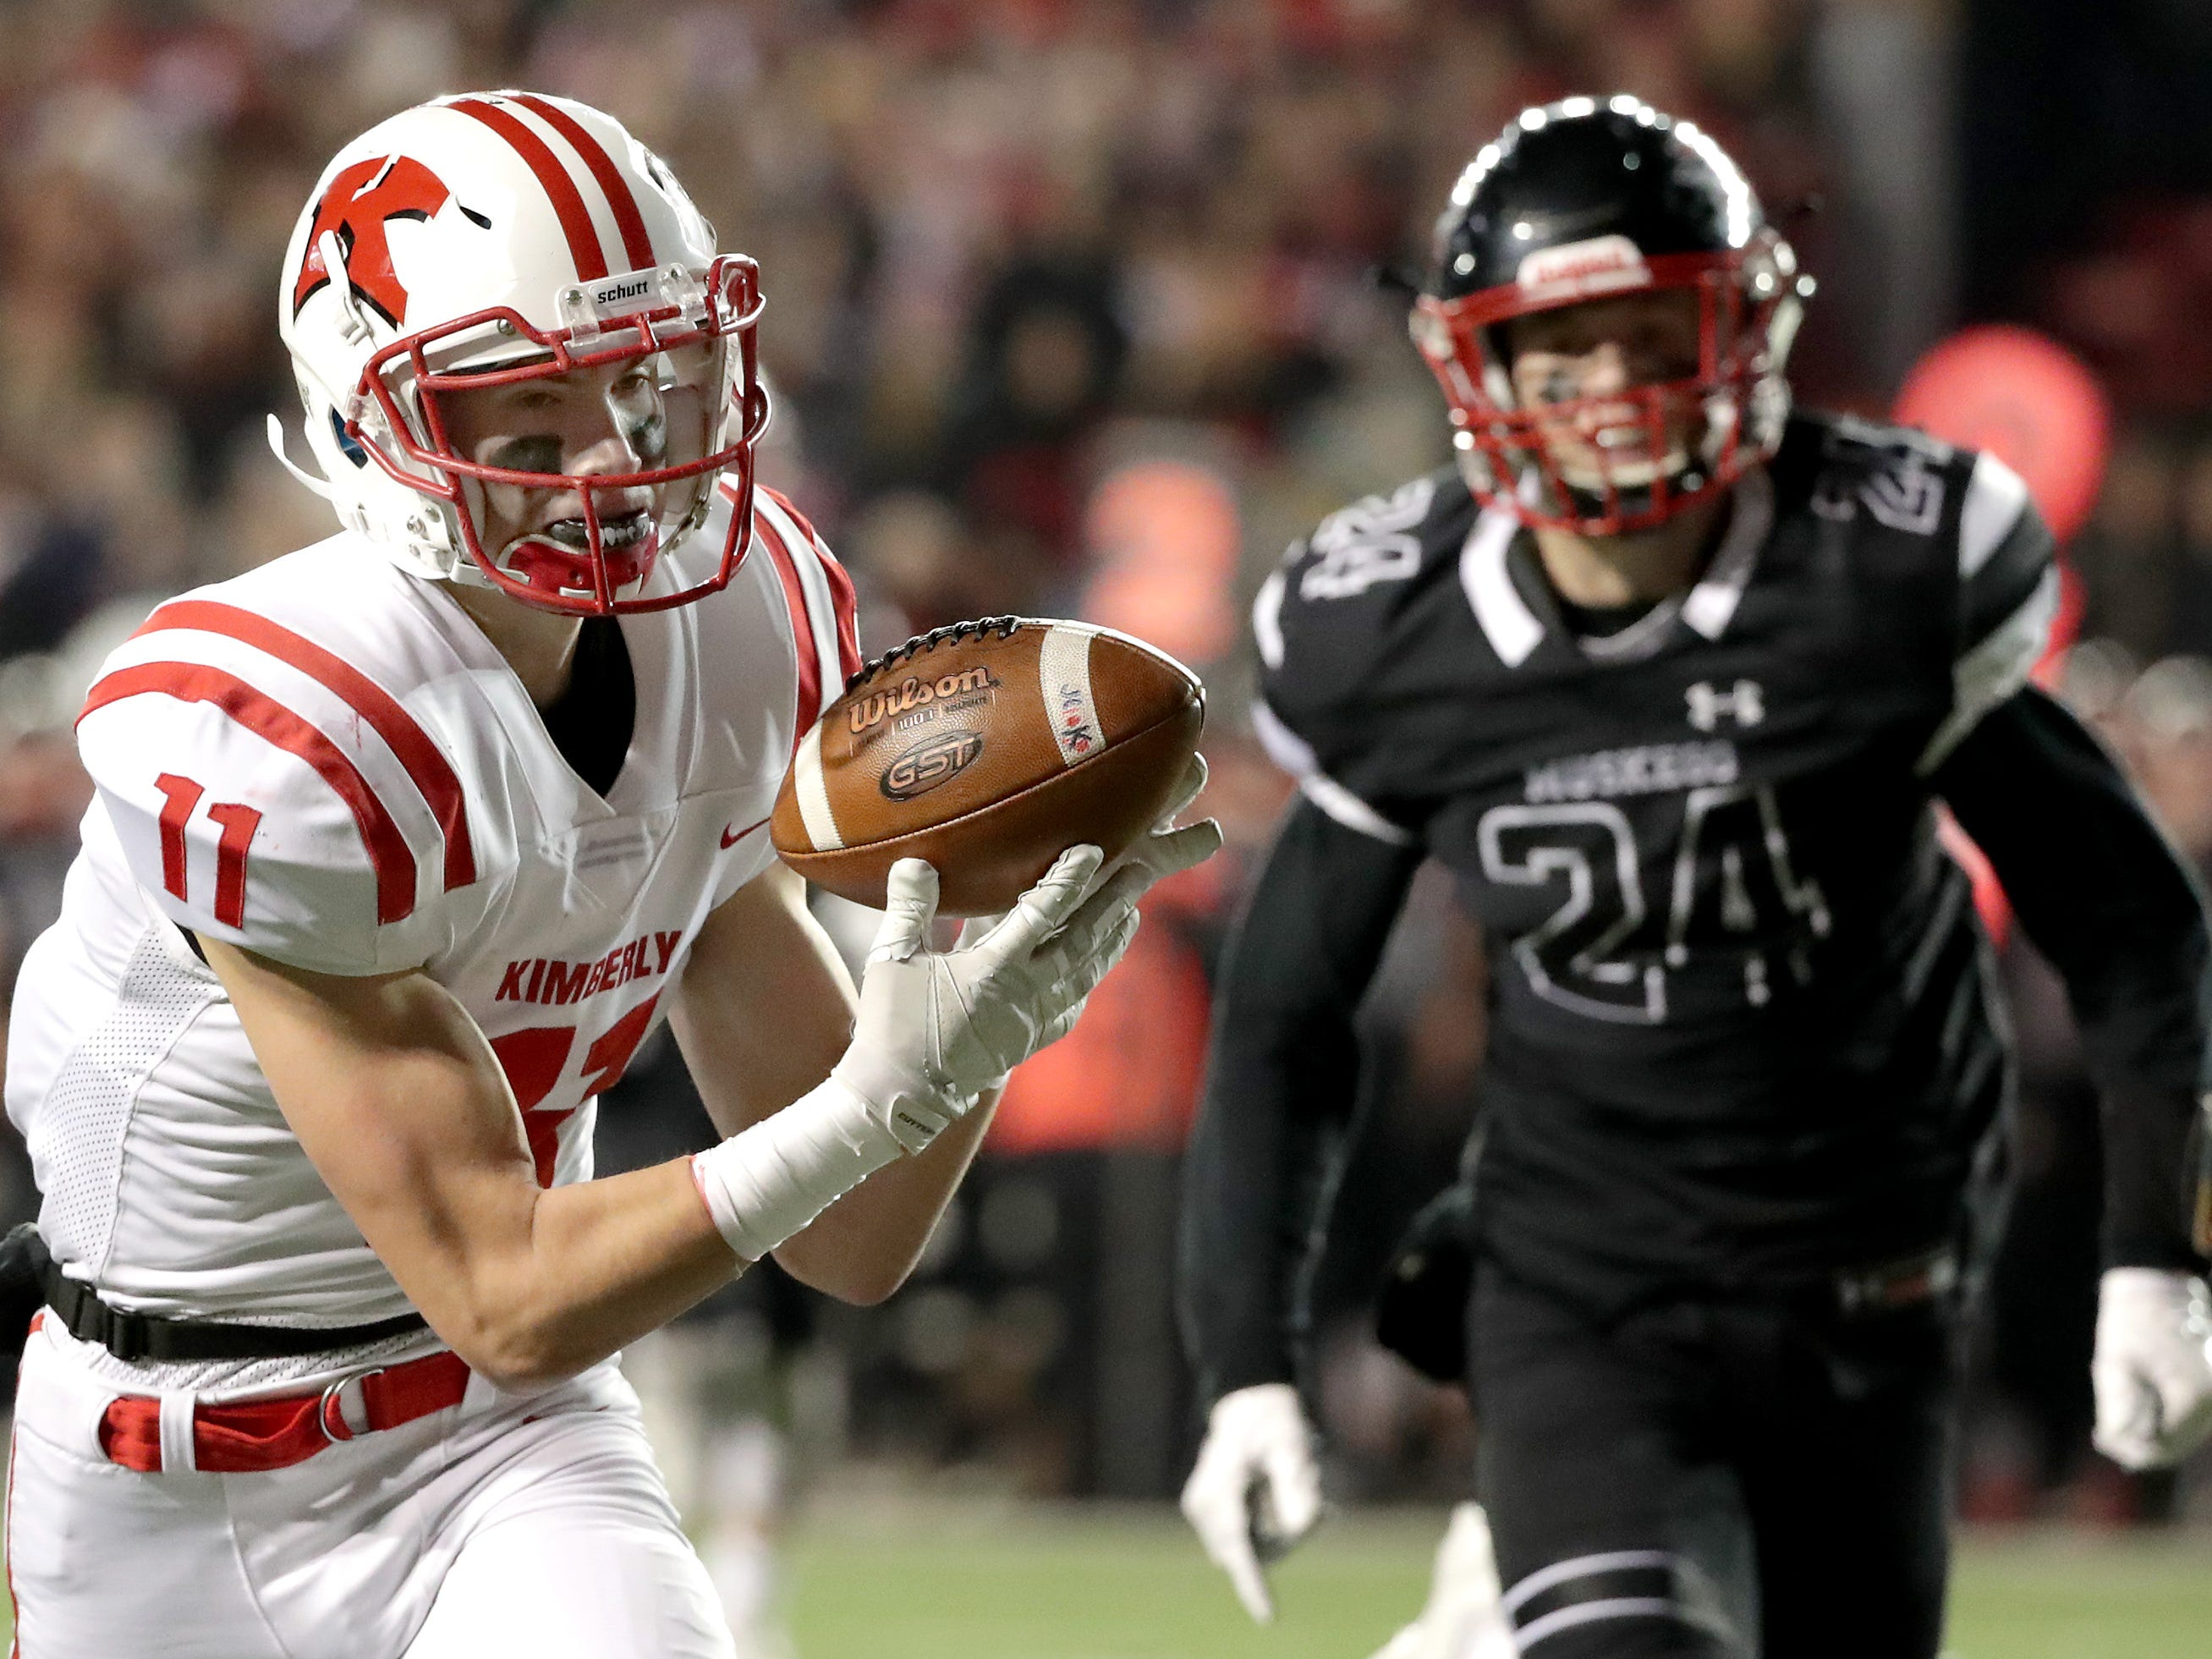 Kimberly High School's #11 Conner Wnek catches a touch down pass against Muskego High School during the WIAA Division 1 state championship football game on Friday, November 16, 2018, at Camp Randall in Madison, Wis.